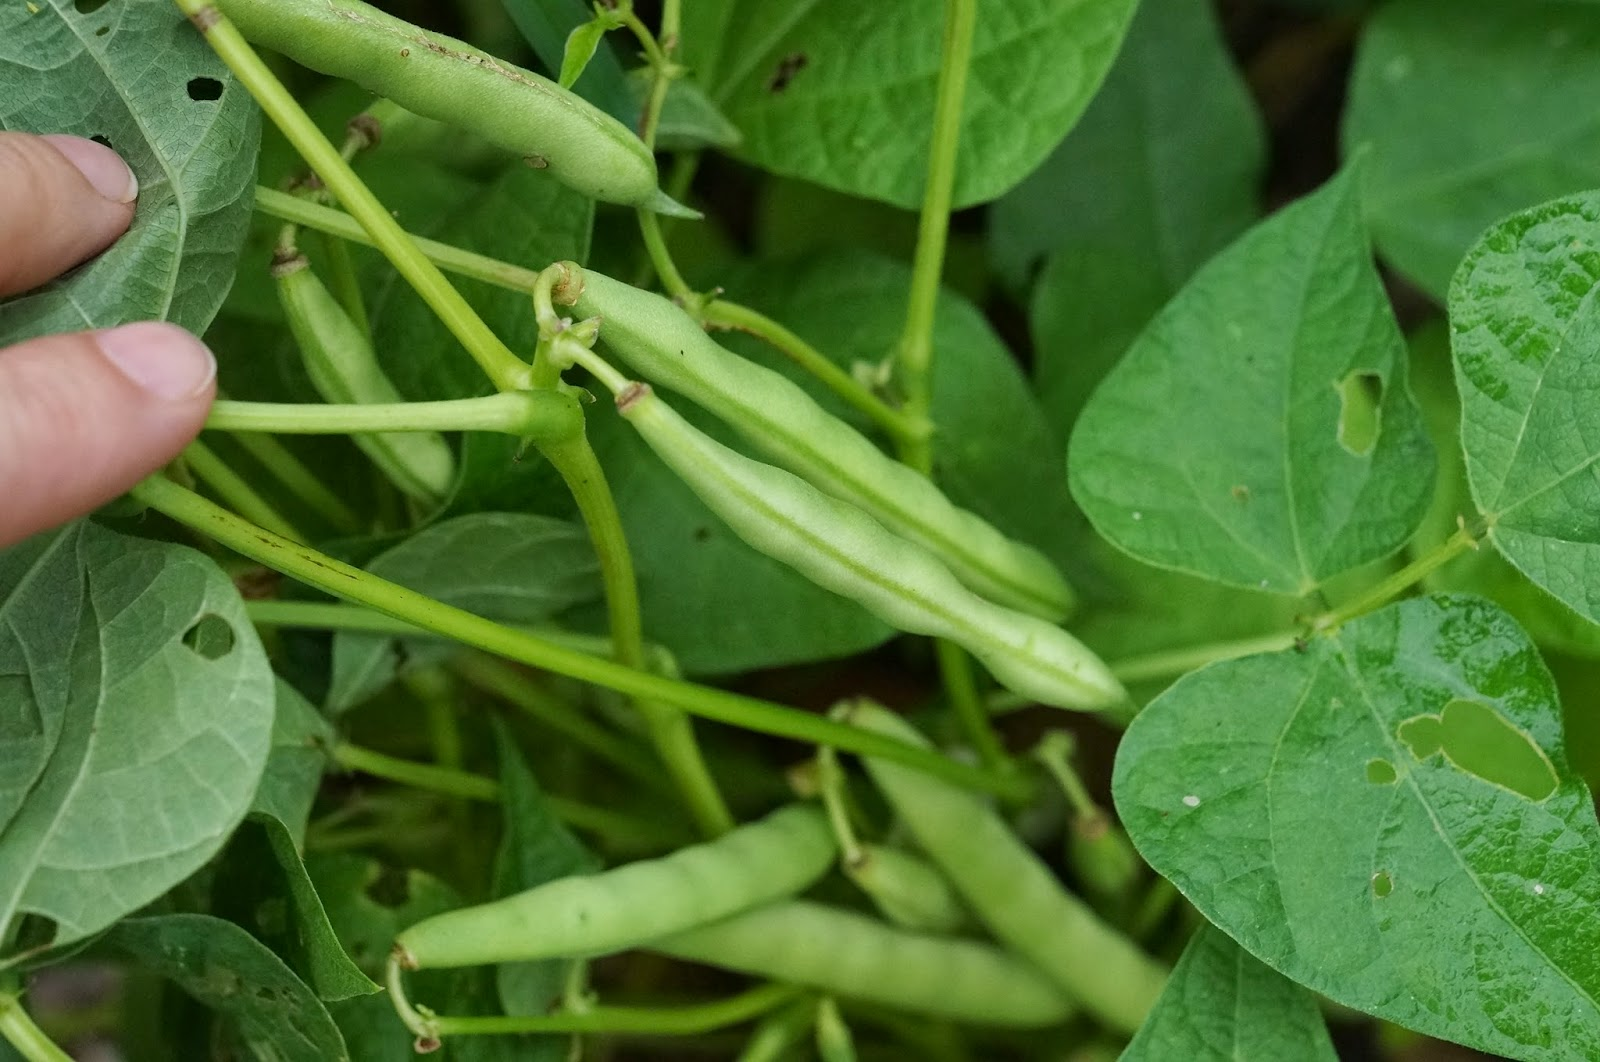 Beans Plant Images They Plant Like Green Beans do